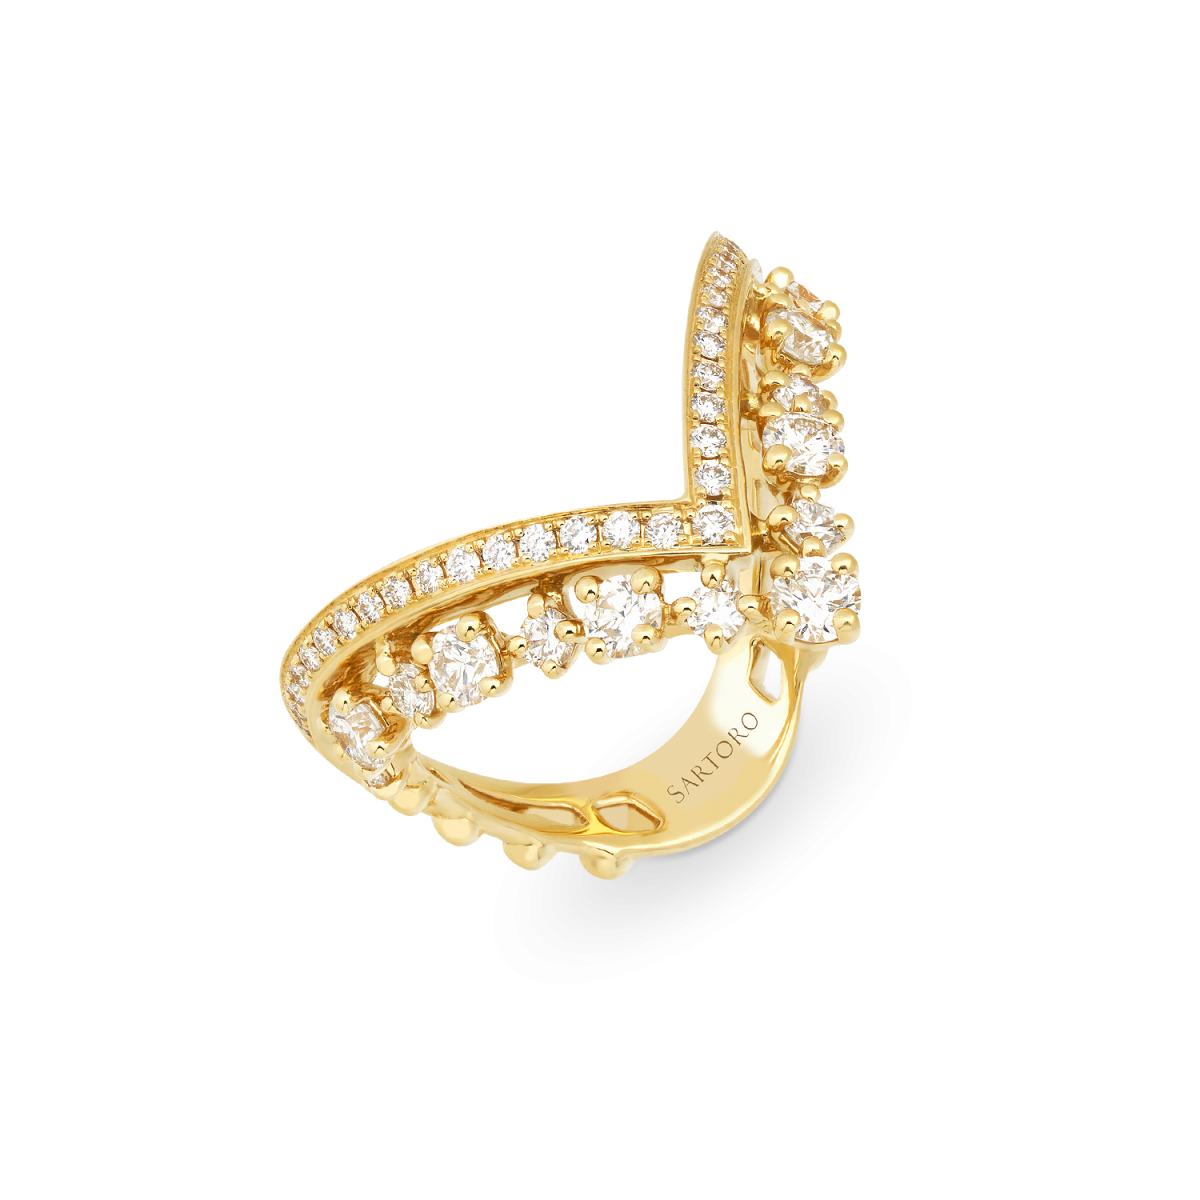 yellow gold ring with diamonds